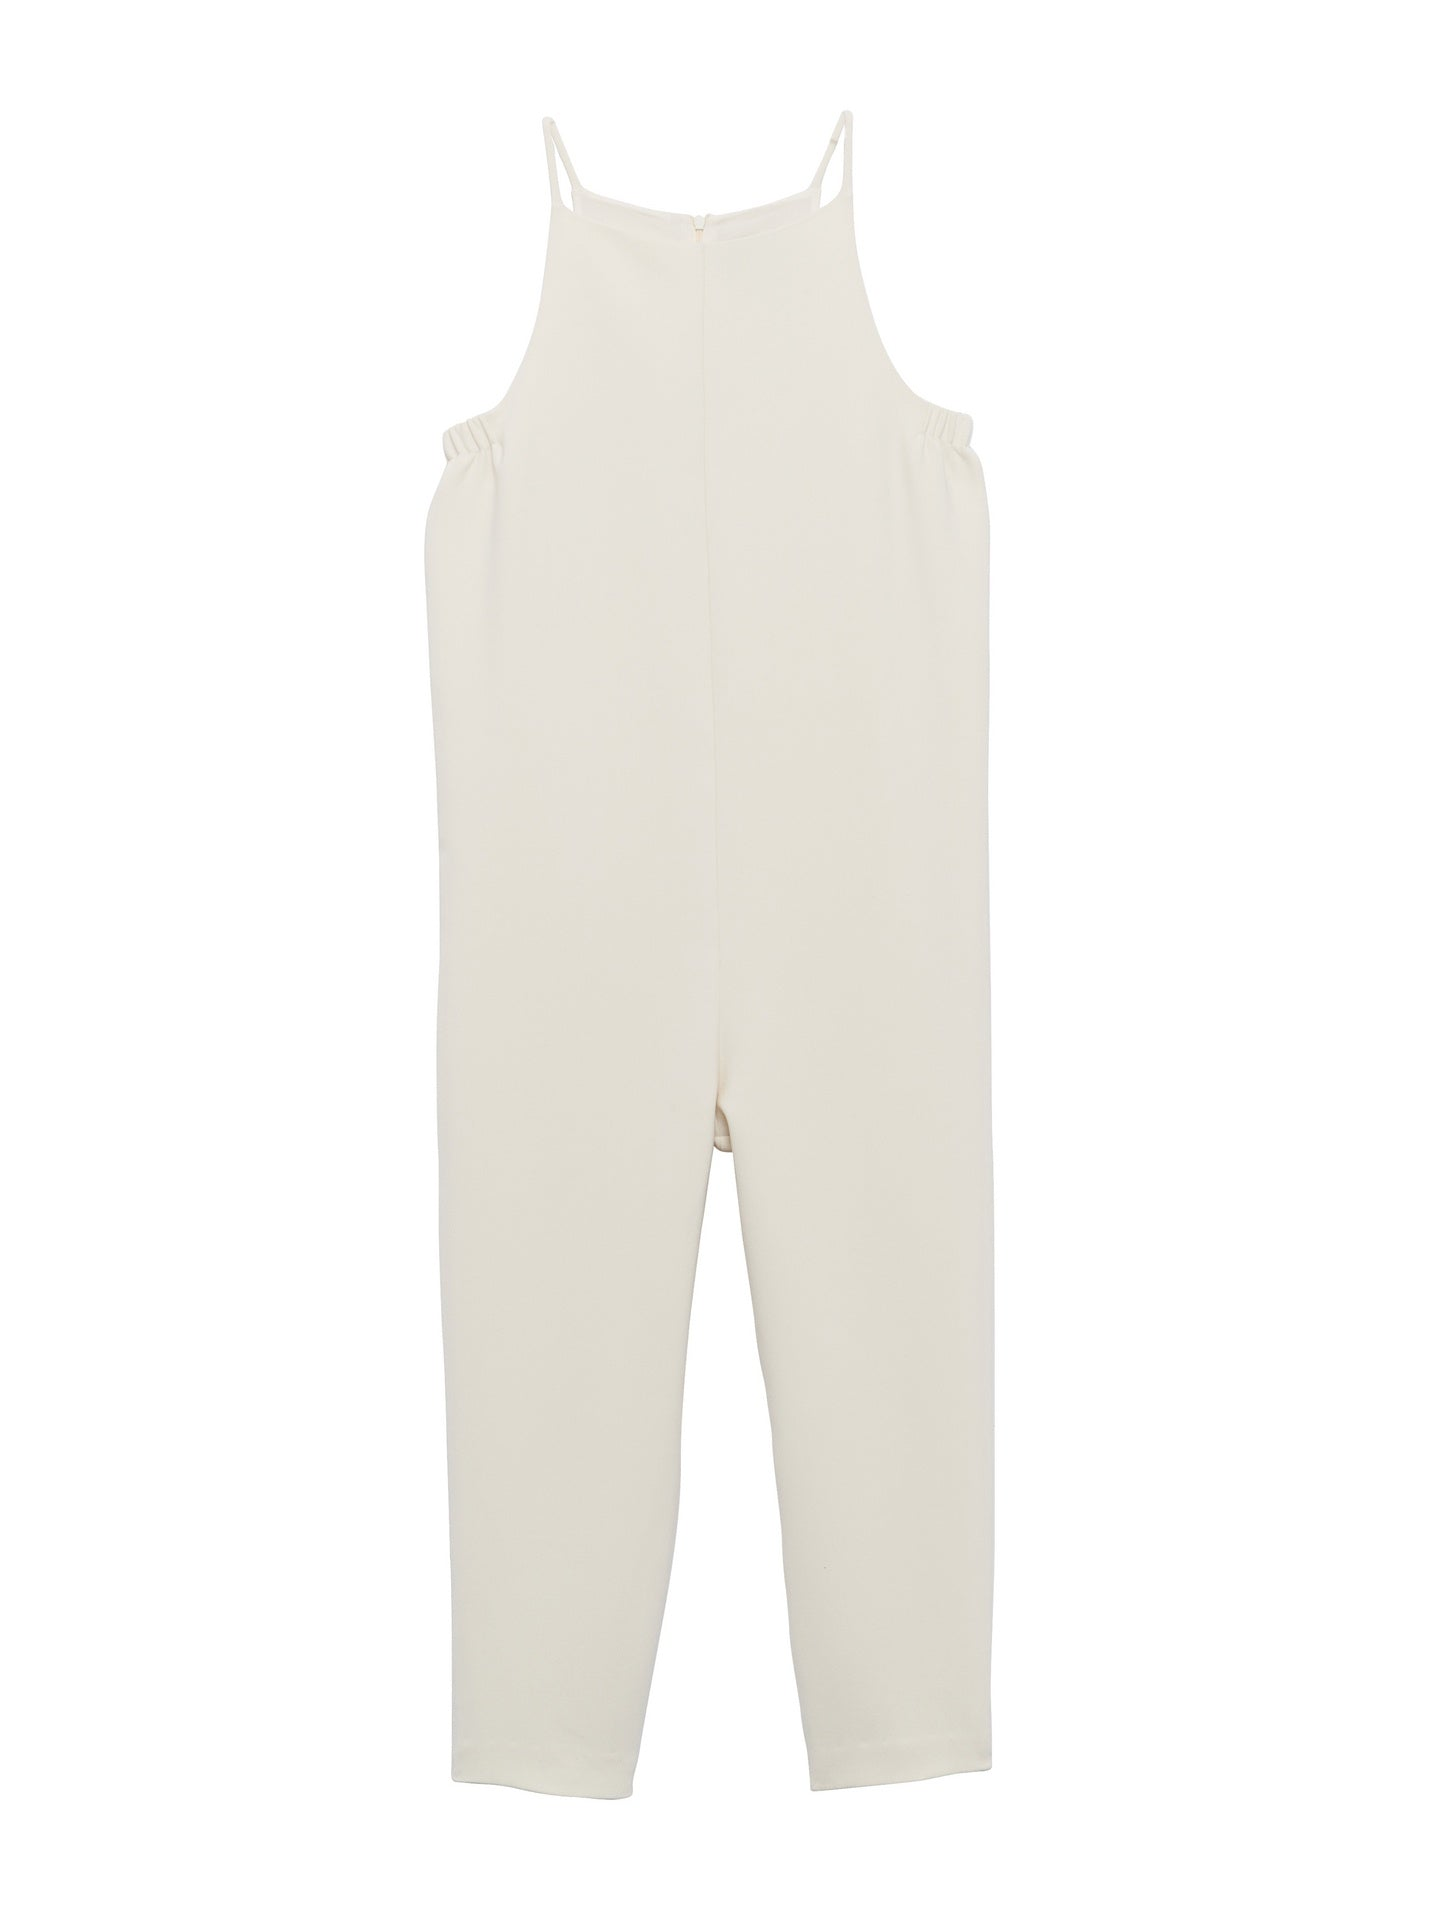 Beth - Yard Jumpsuit / White Crepe